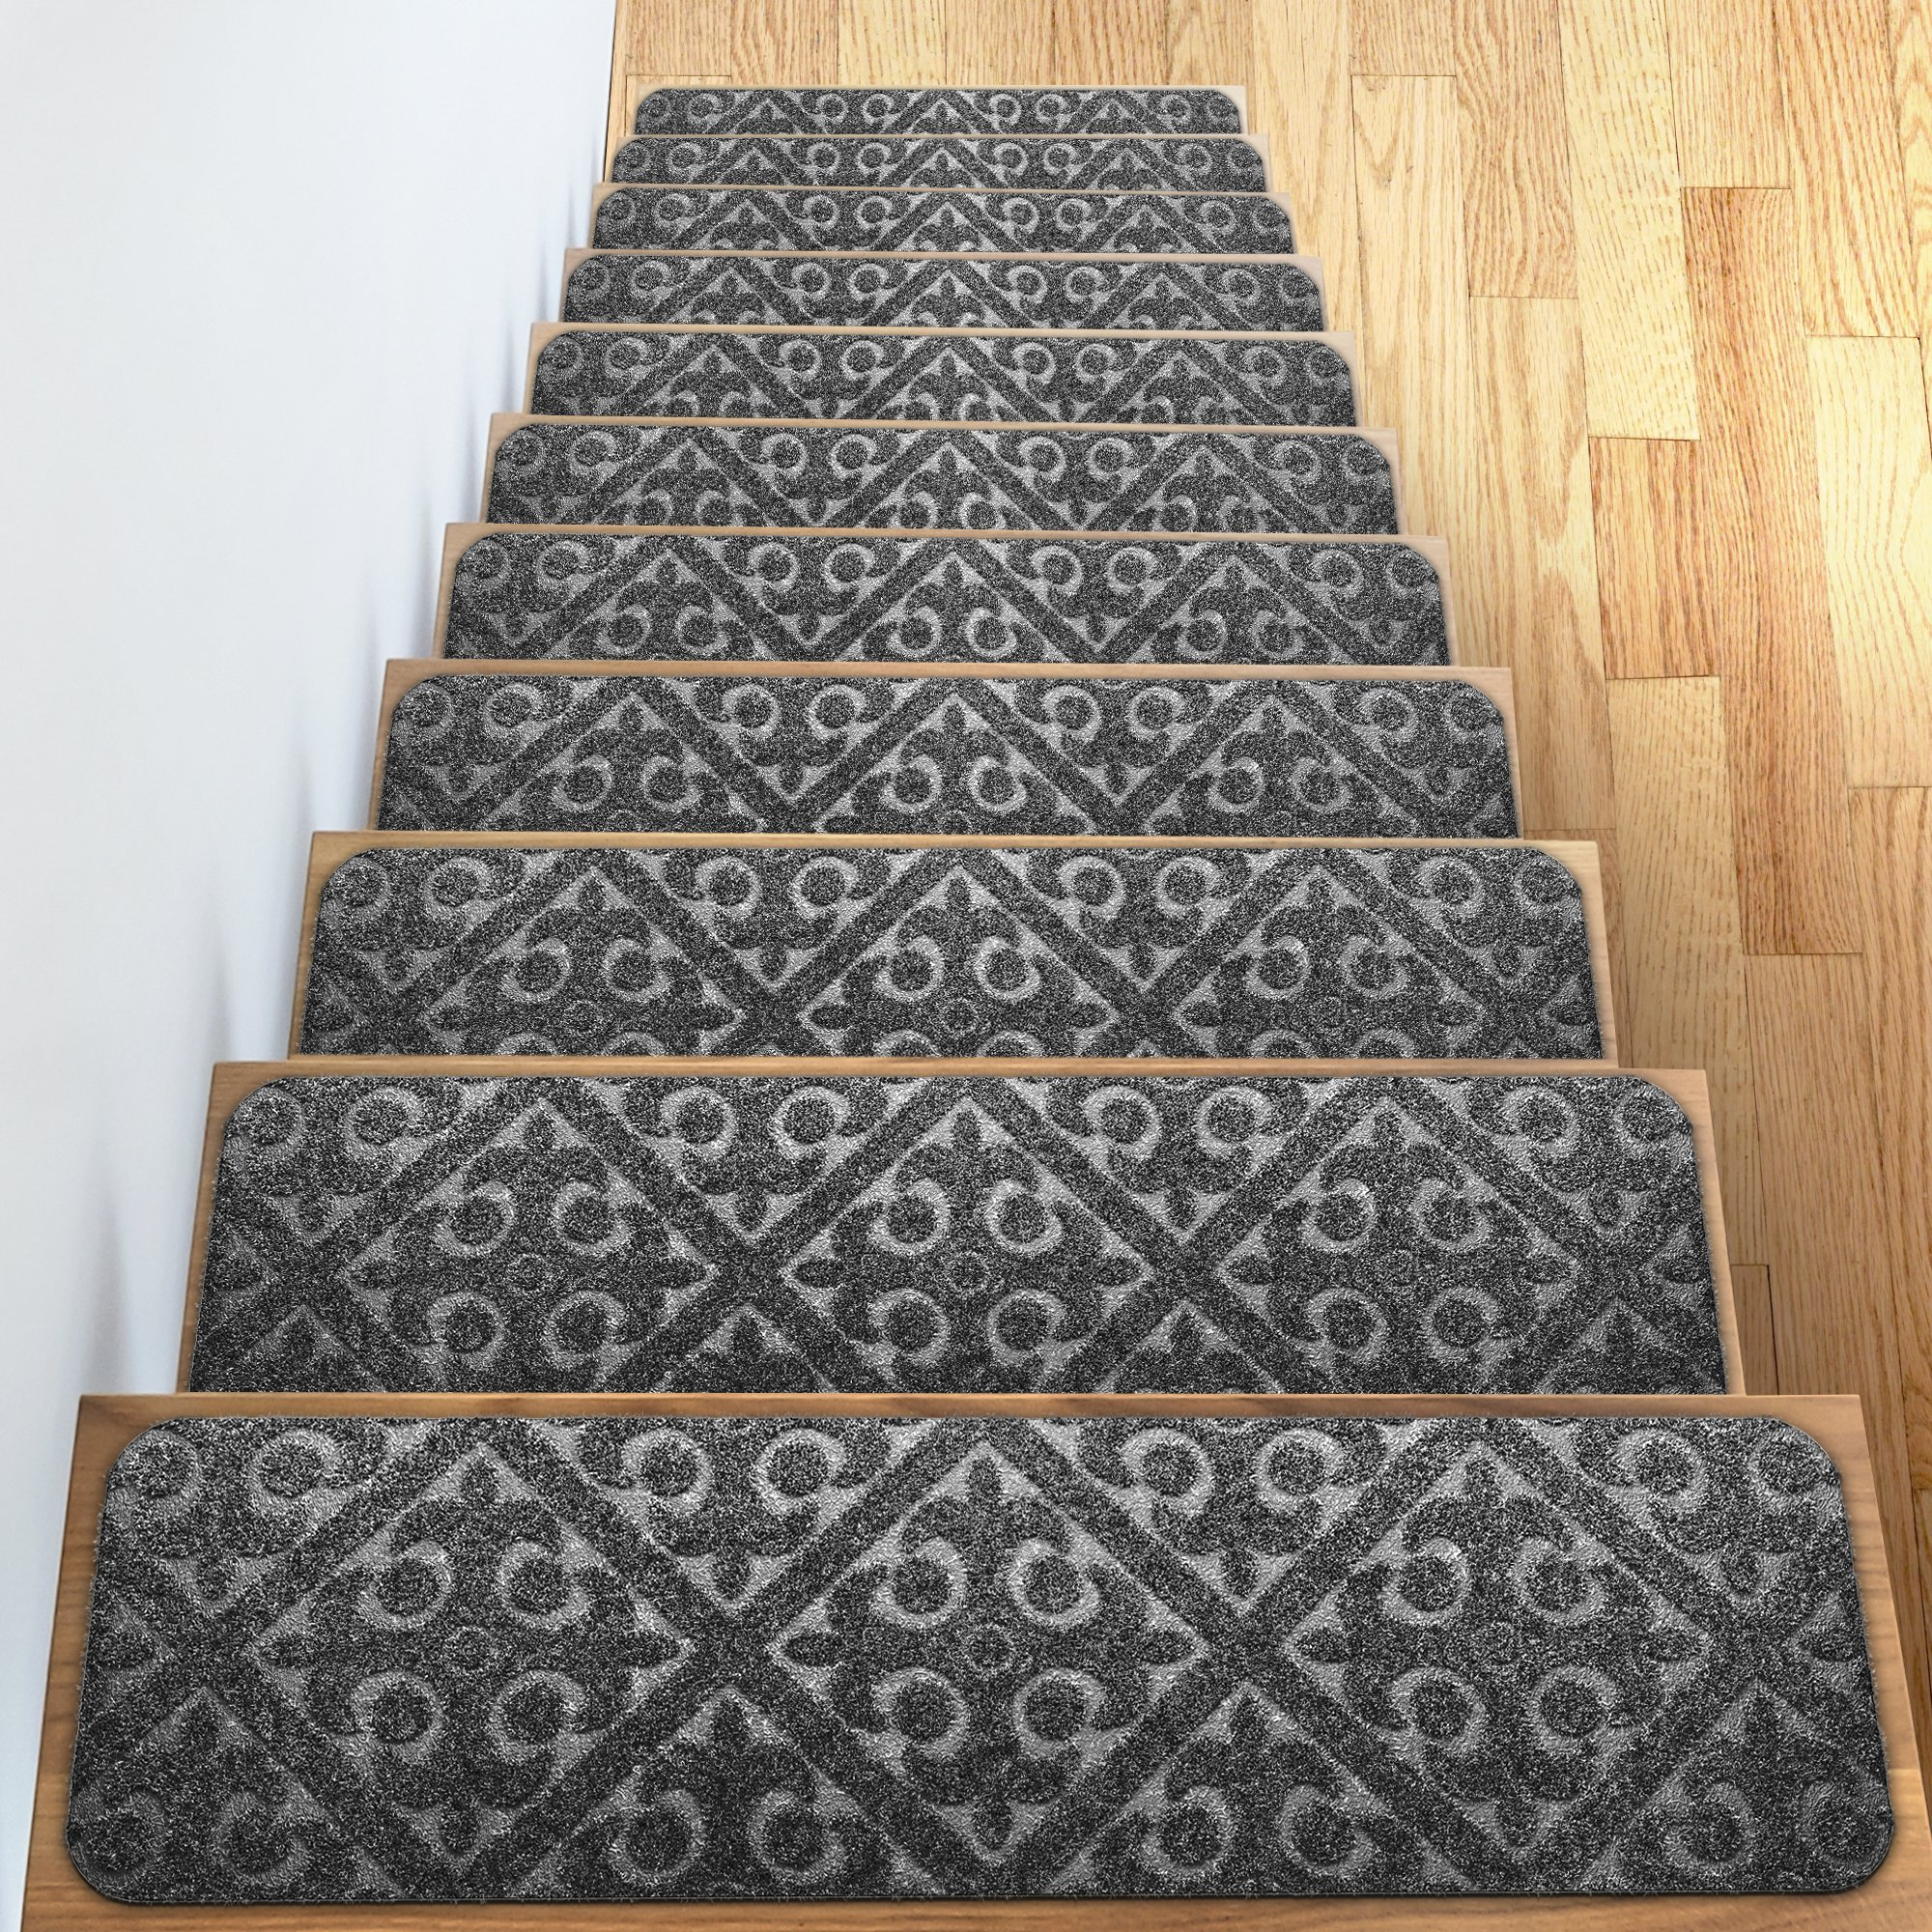 Carpet Stair Treads Set of 13 Non Slip/Skid Rubber Runner Mats or Rug Tread - Indoor Outdoor Pet Dog Stair Treads Pads - Non-Slip Stairway Carpet Rugs (Gray) 8'' x 30'' Includes Adhesive Tape by Elogio